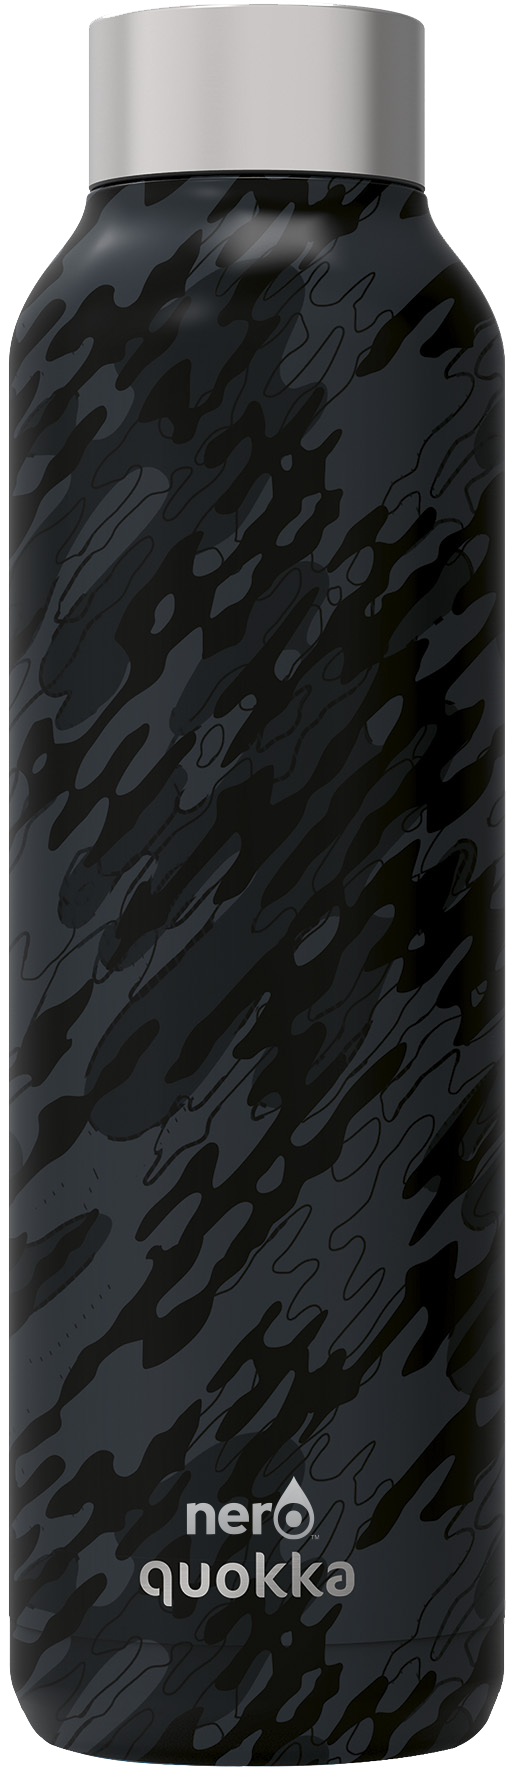 NERO Quokka Black Camouflage Stainless Steel Water Bottle 21 oz